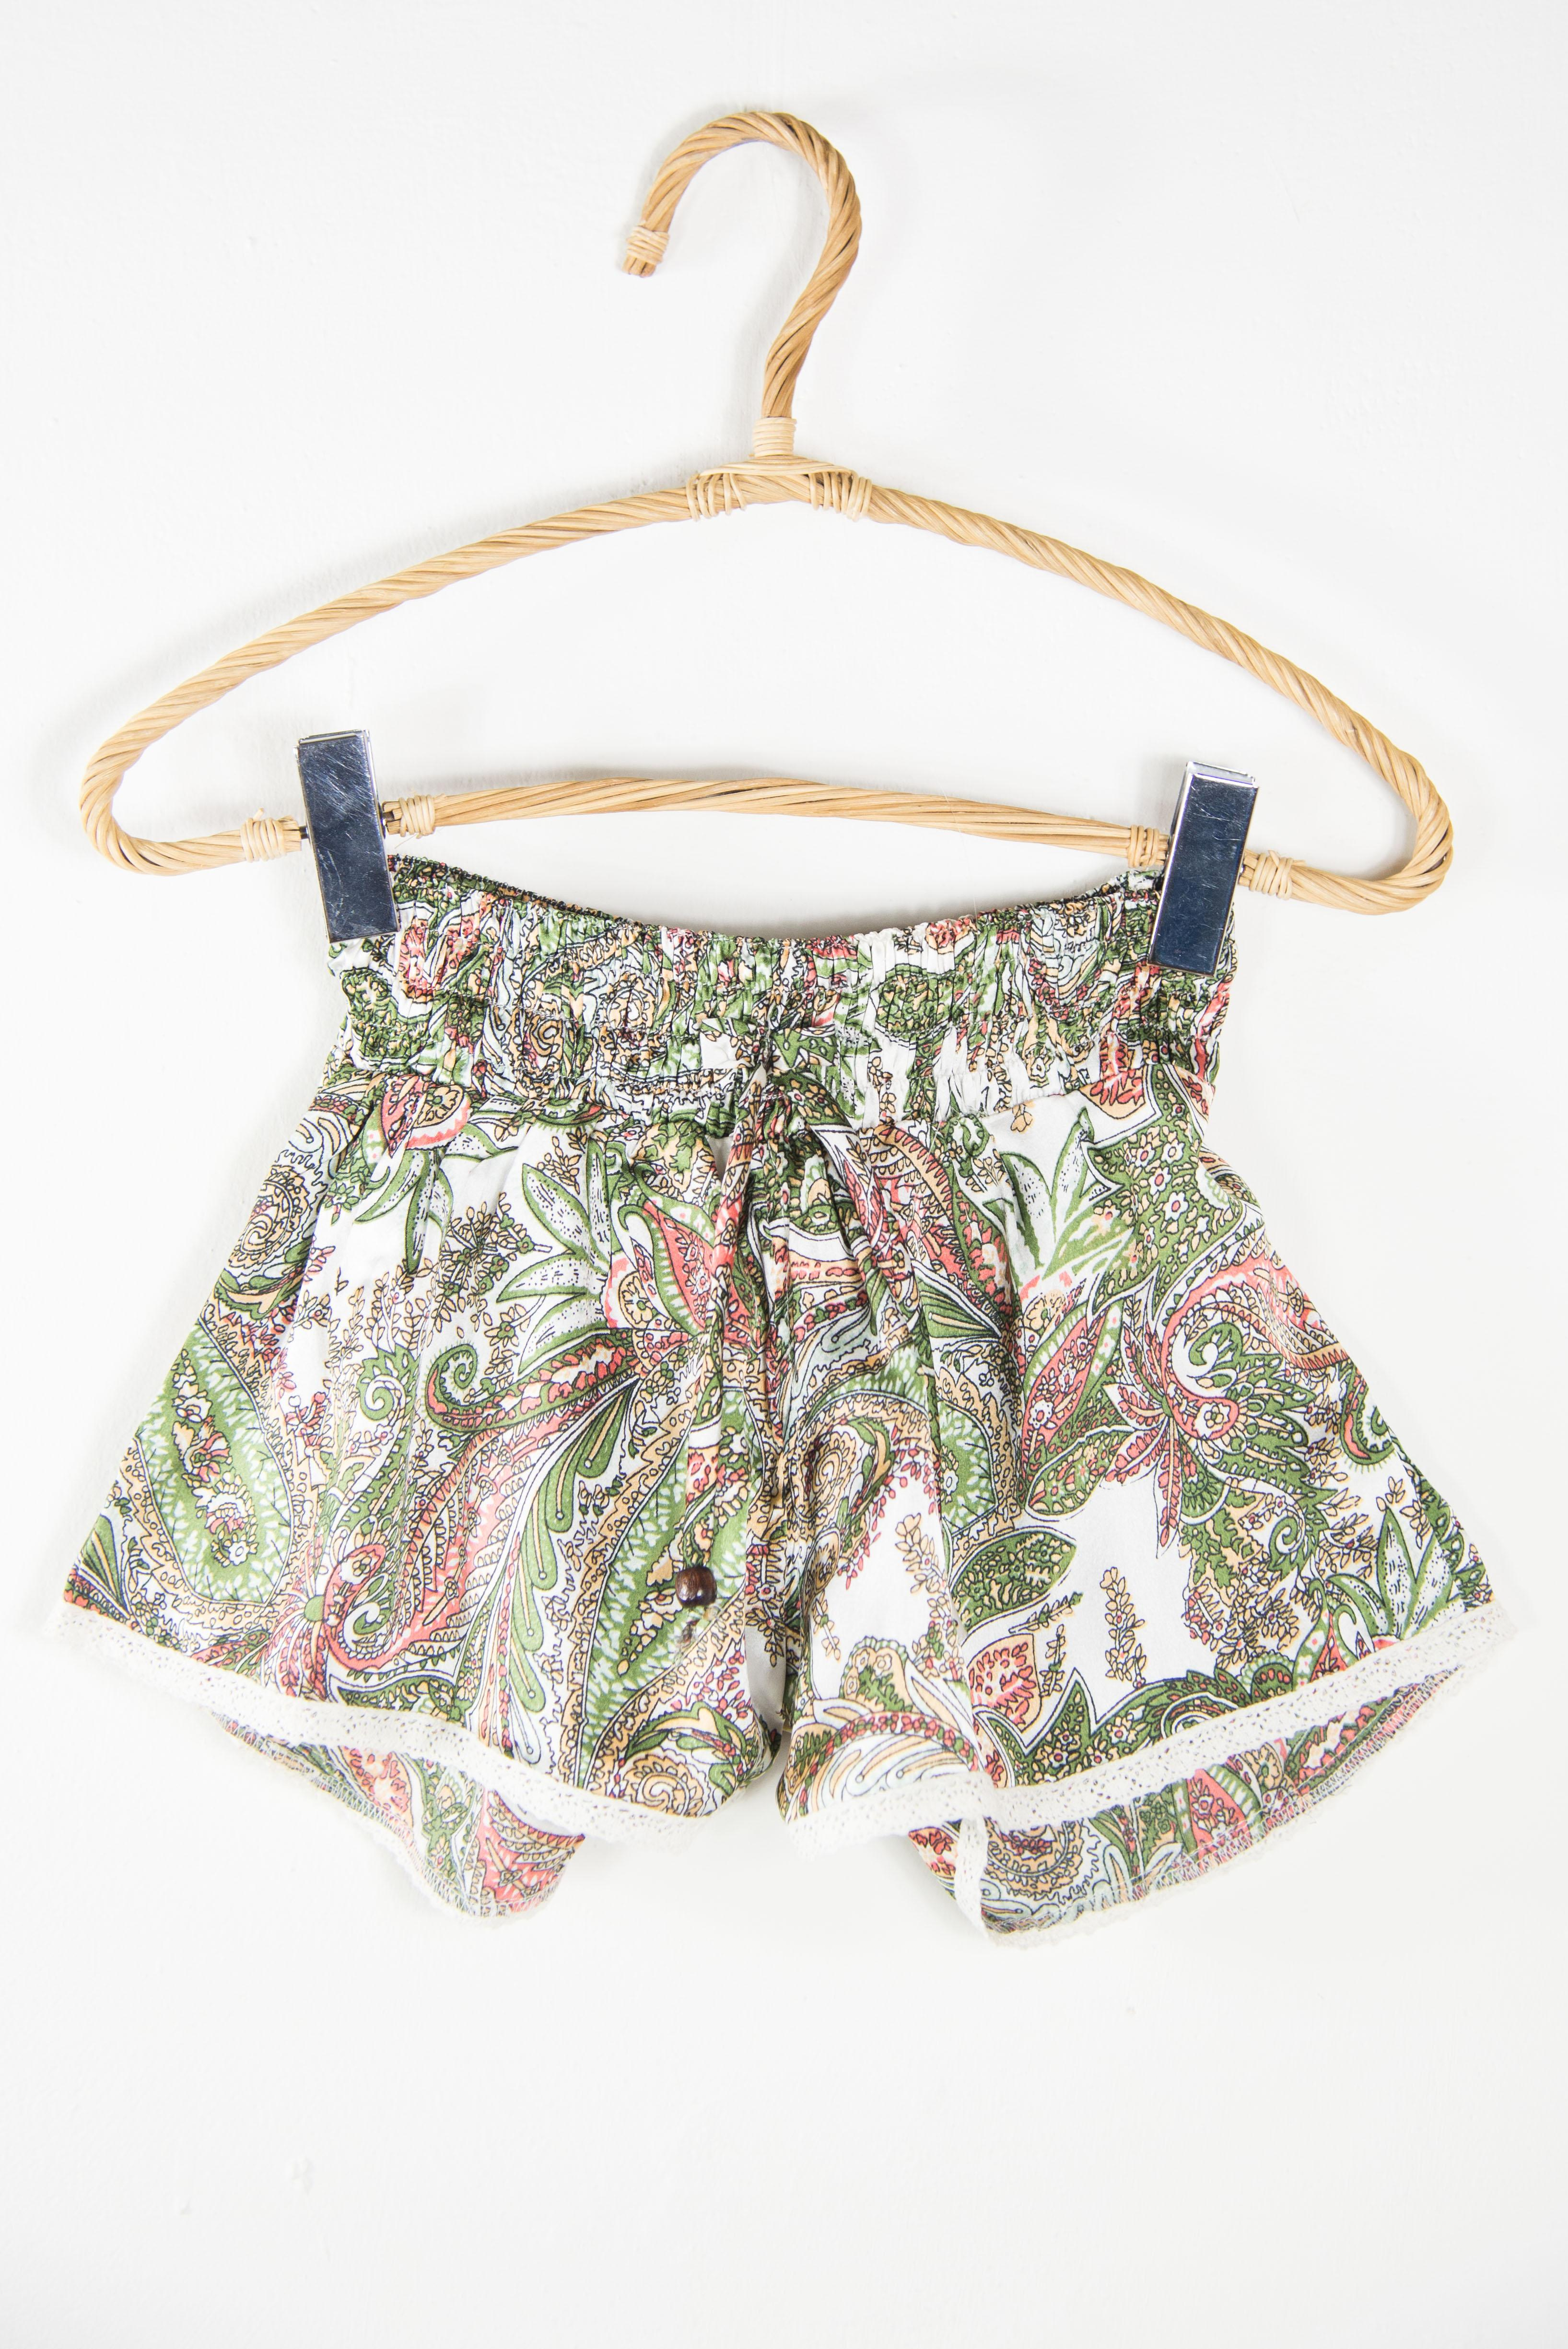 Women's short trousers | Clothing for sale online